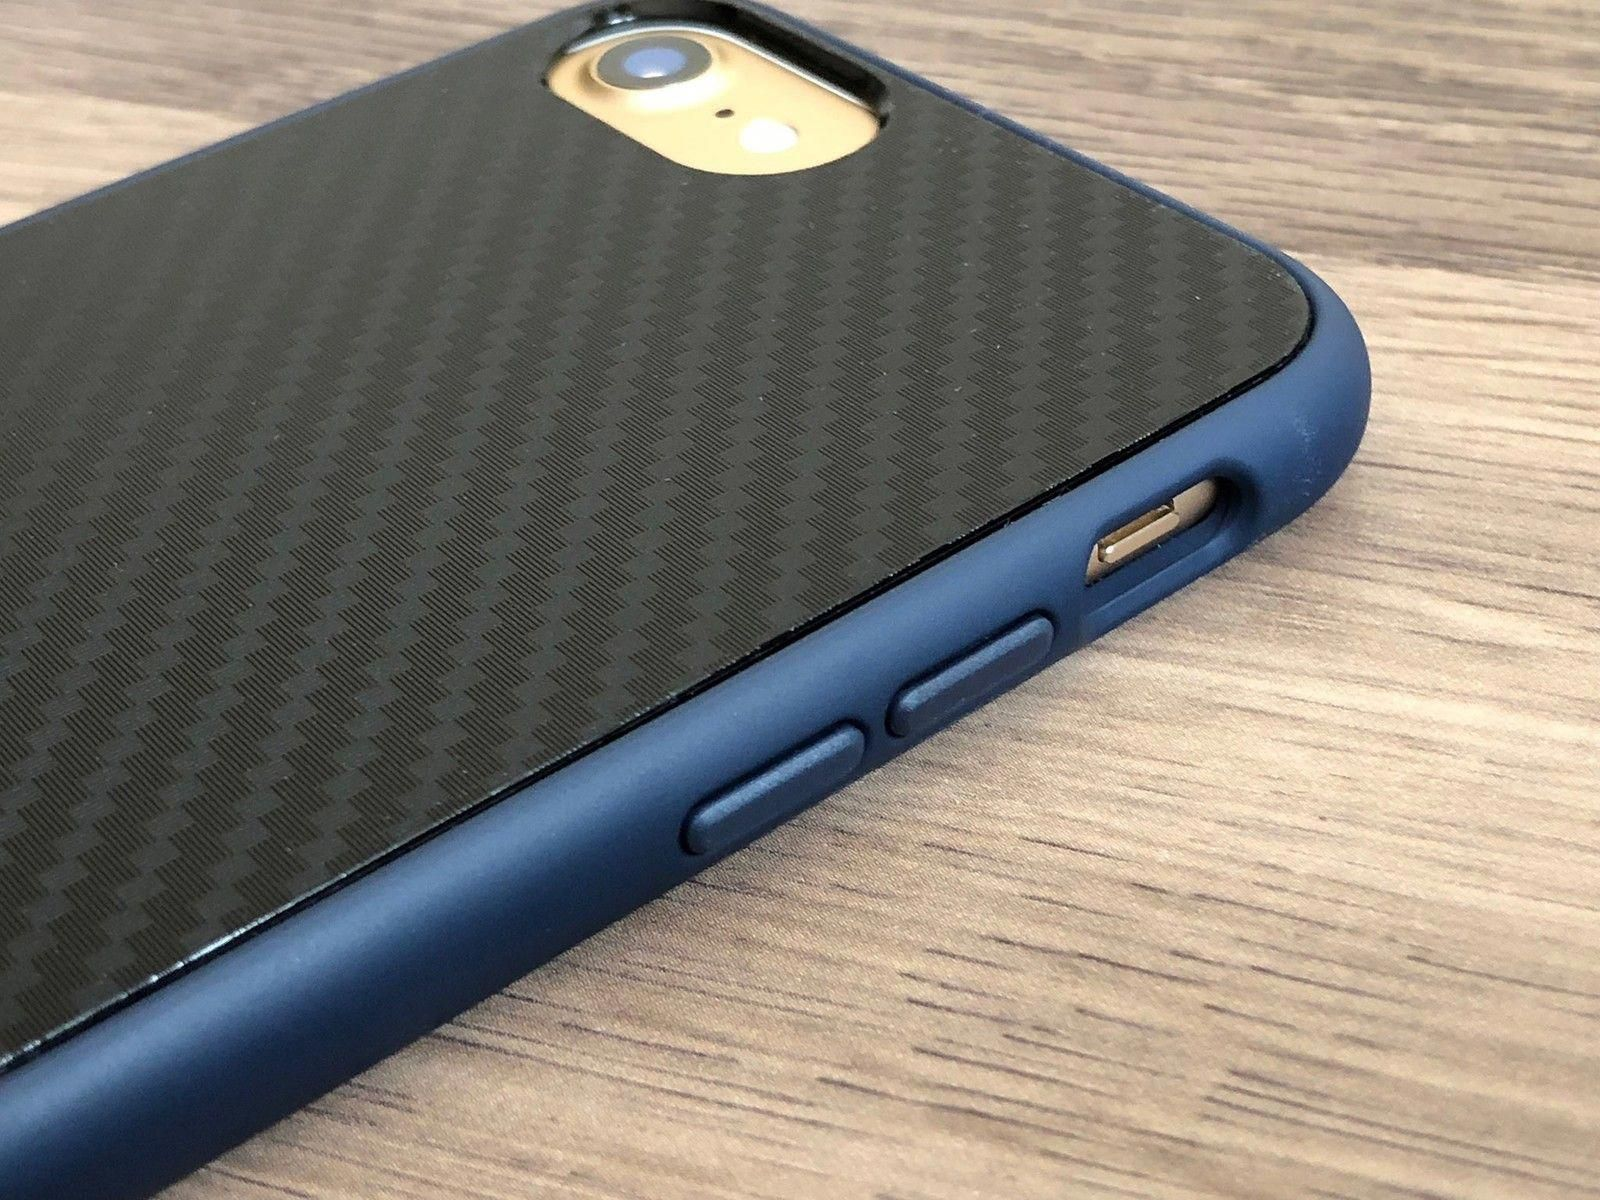 best deals on 79e91 fe95d RhinoShield Mod case for iPhone 8 and iPhone 8 Plus | iMore ...